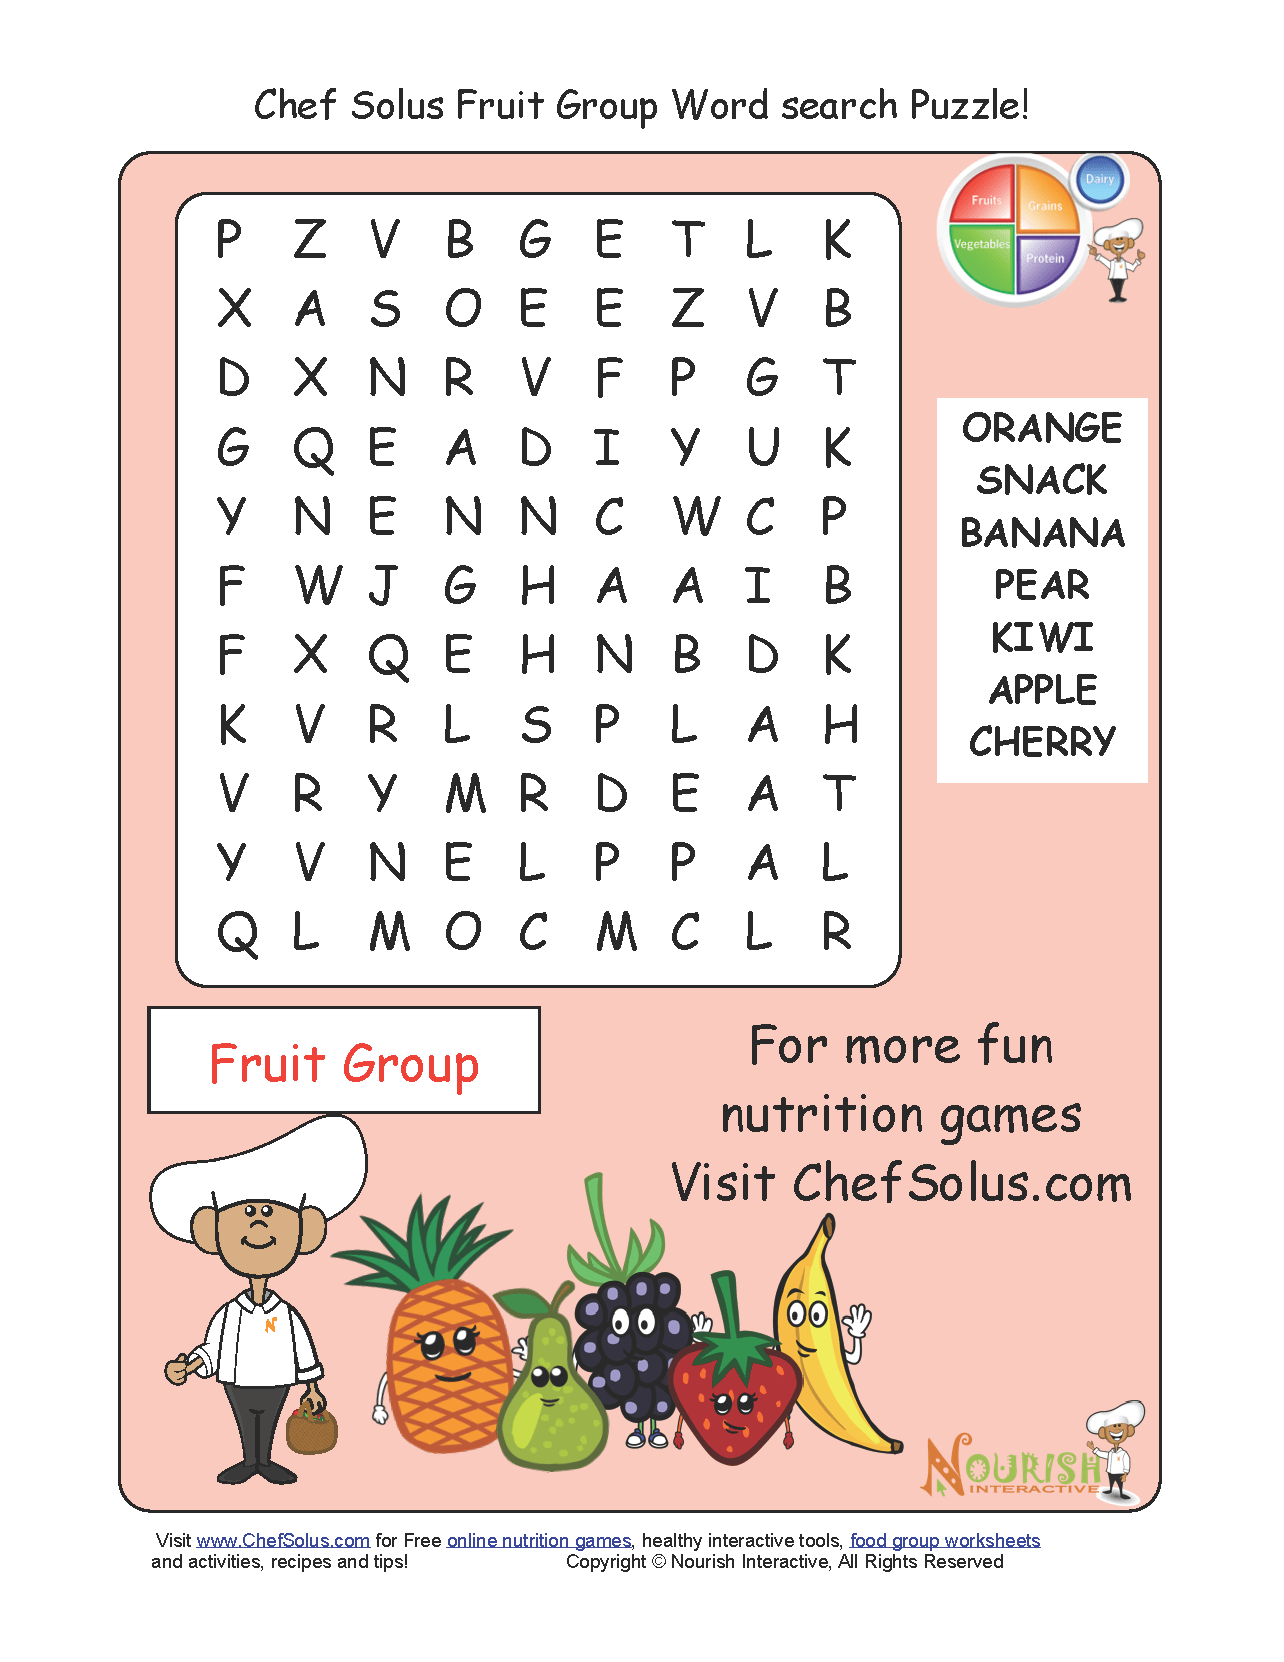 Challenge Your Little Chefs To A Fruit Group Word Search